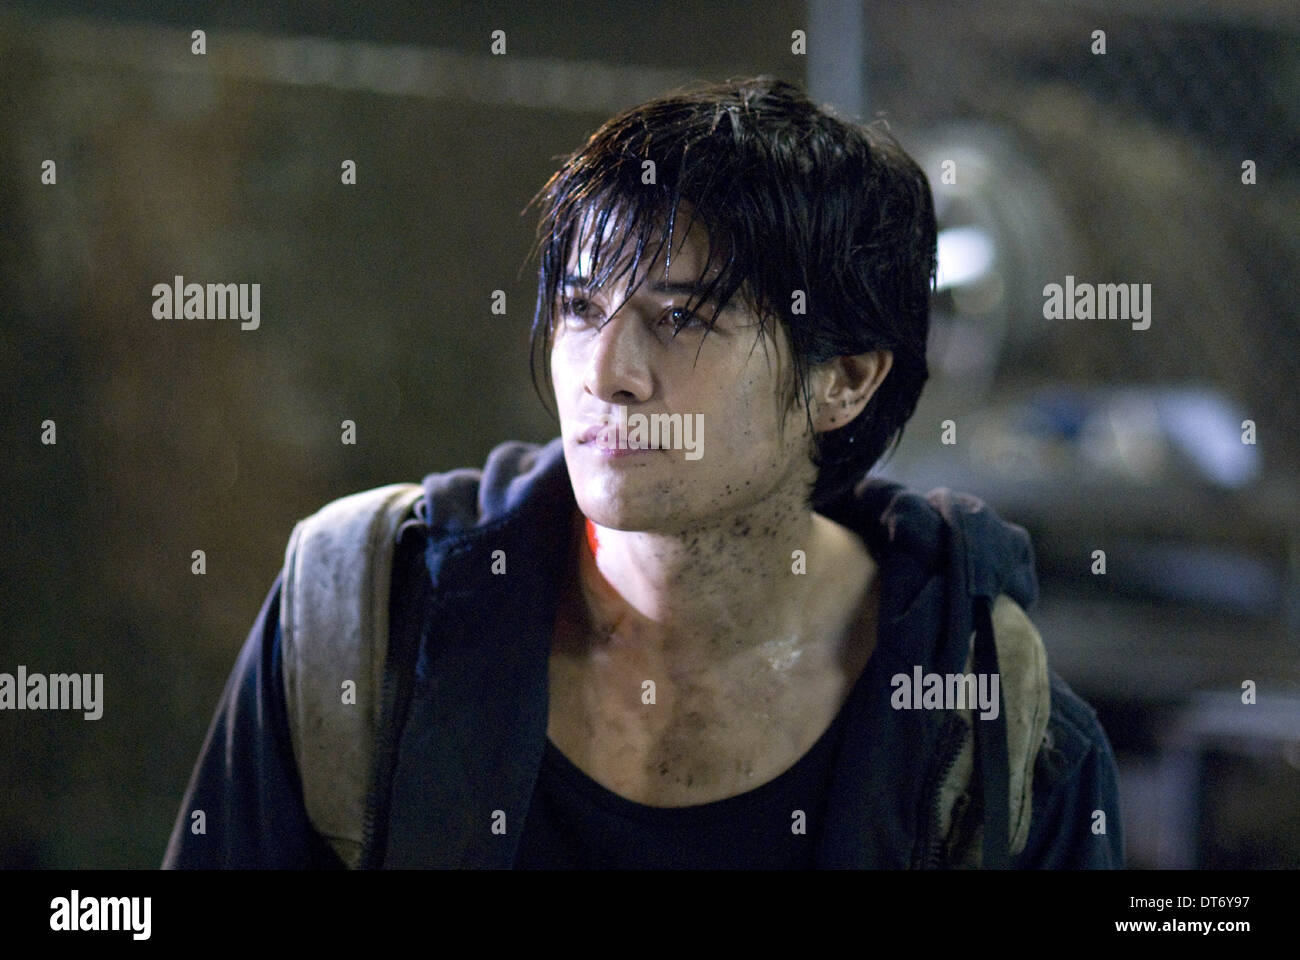 Jon Foo Tekken 2010 Stock Photo 66535987 Alamy